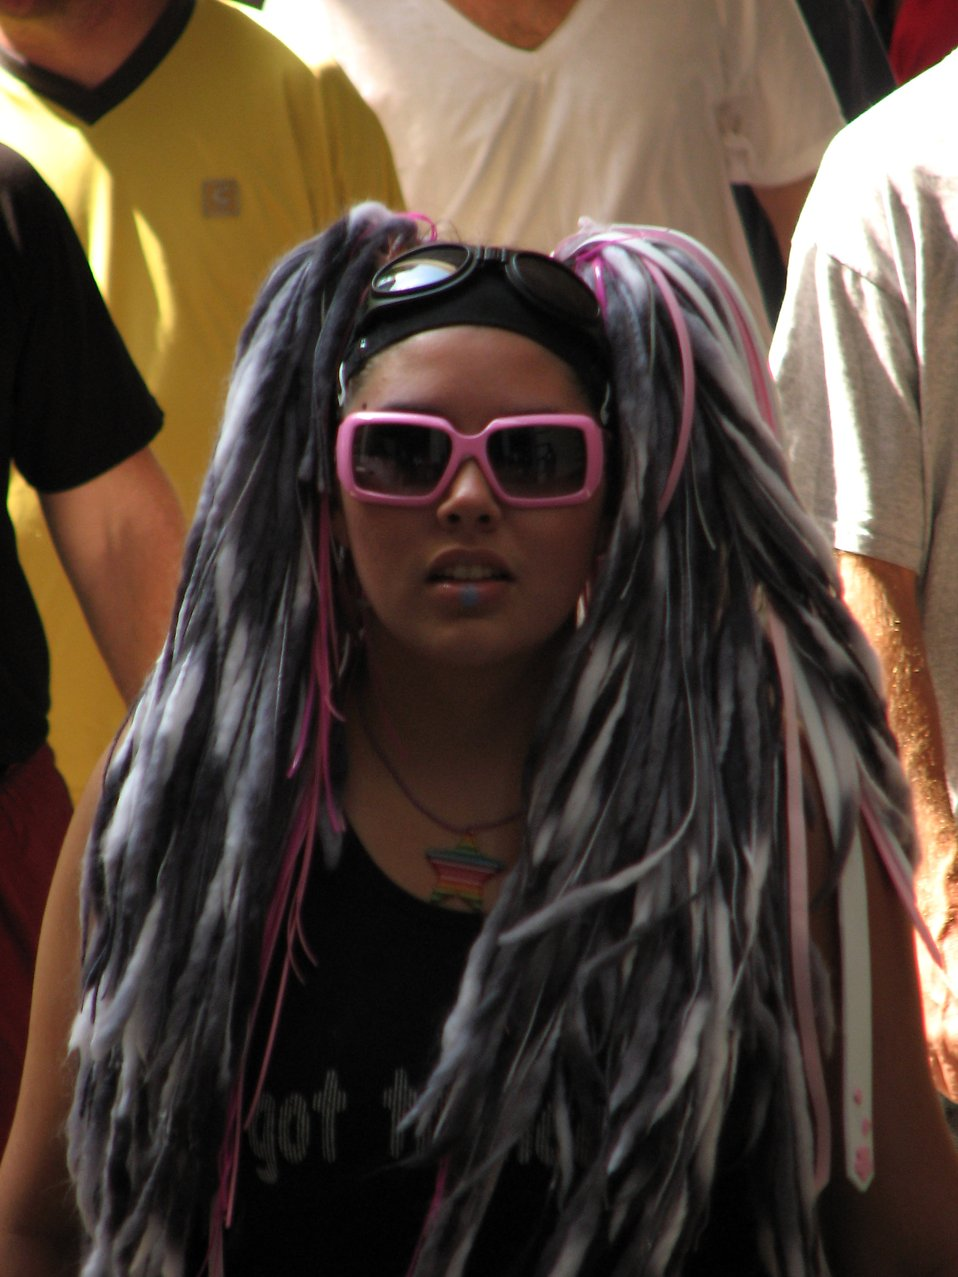 Beautiful young black girl in an anime costume at Dragoncon 2008 : Free Stock Photo